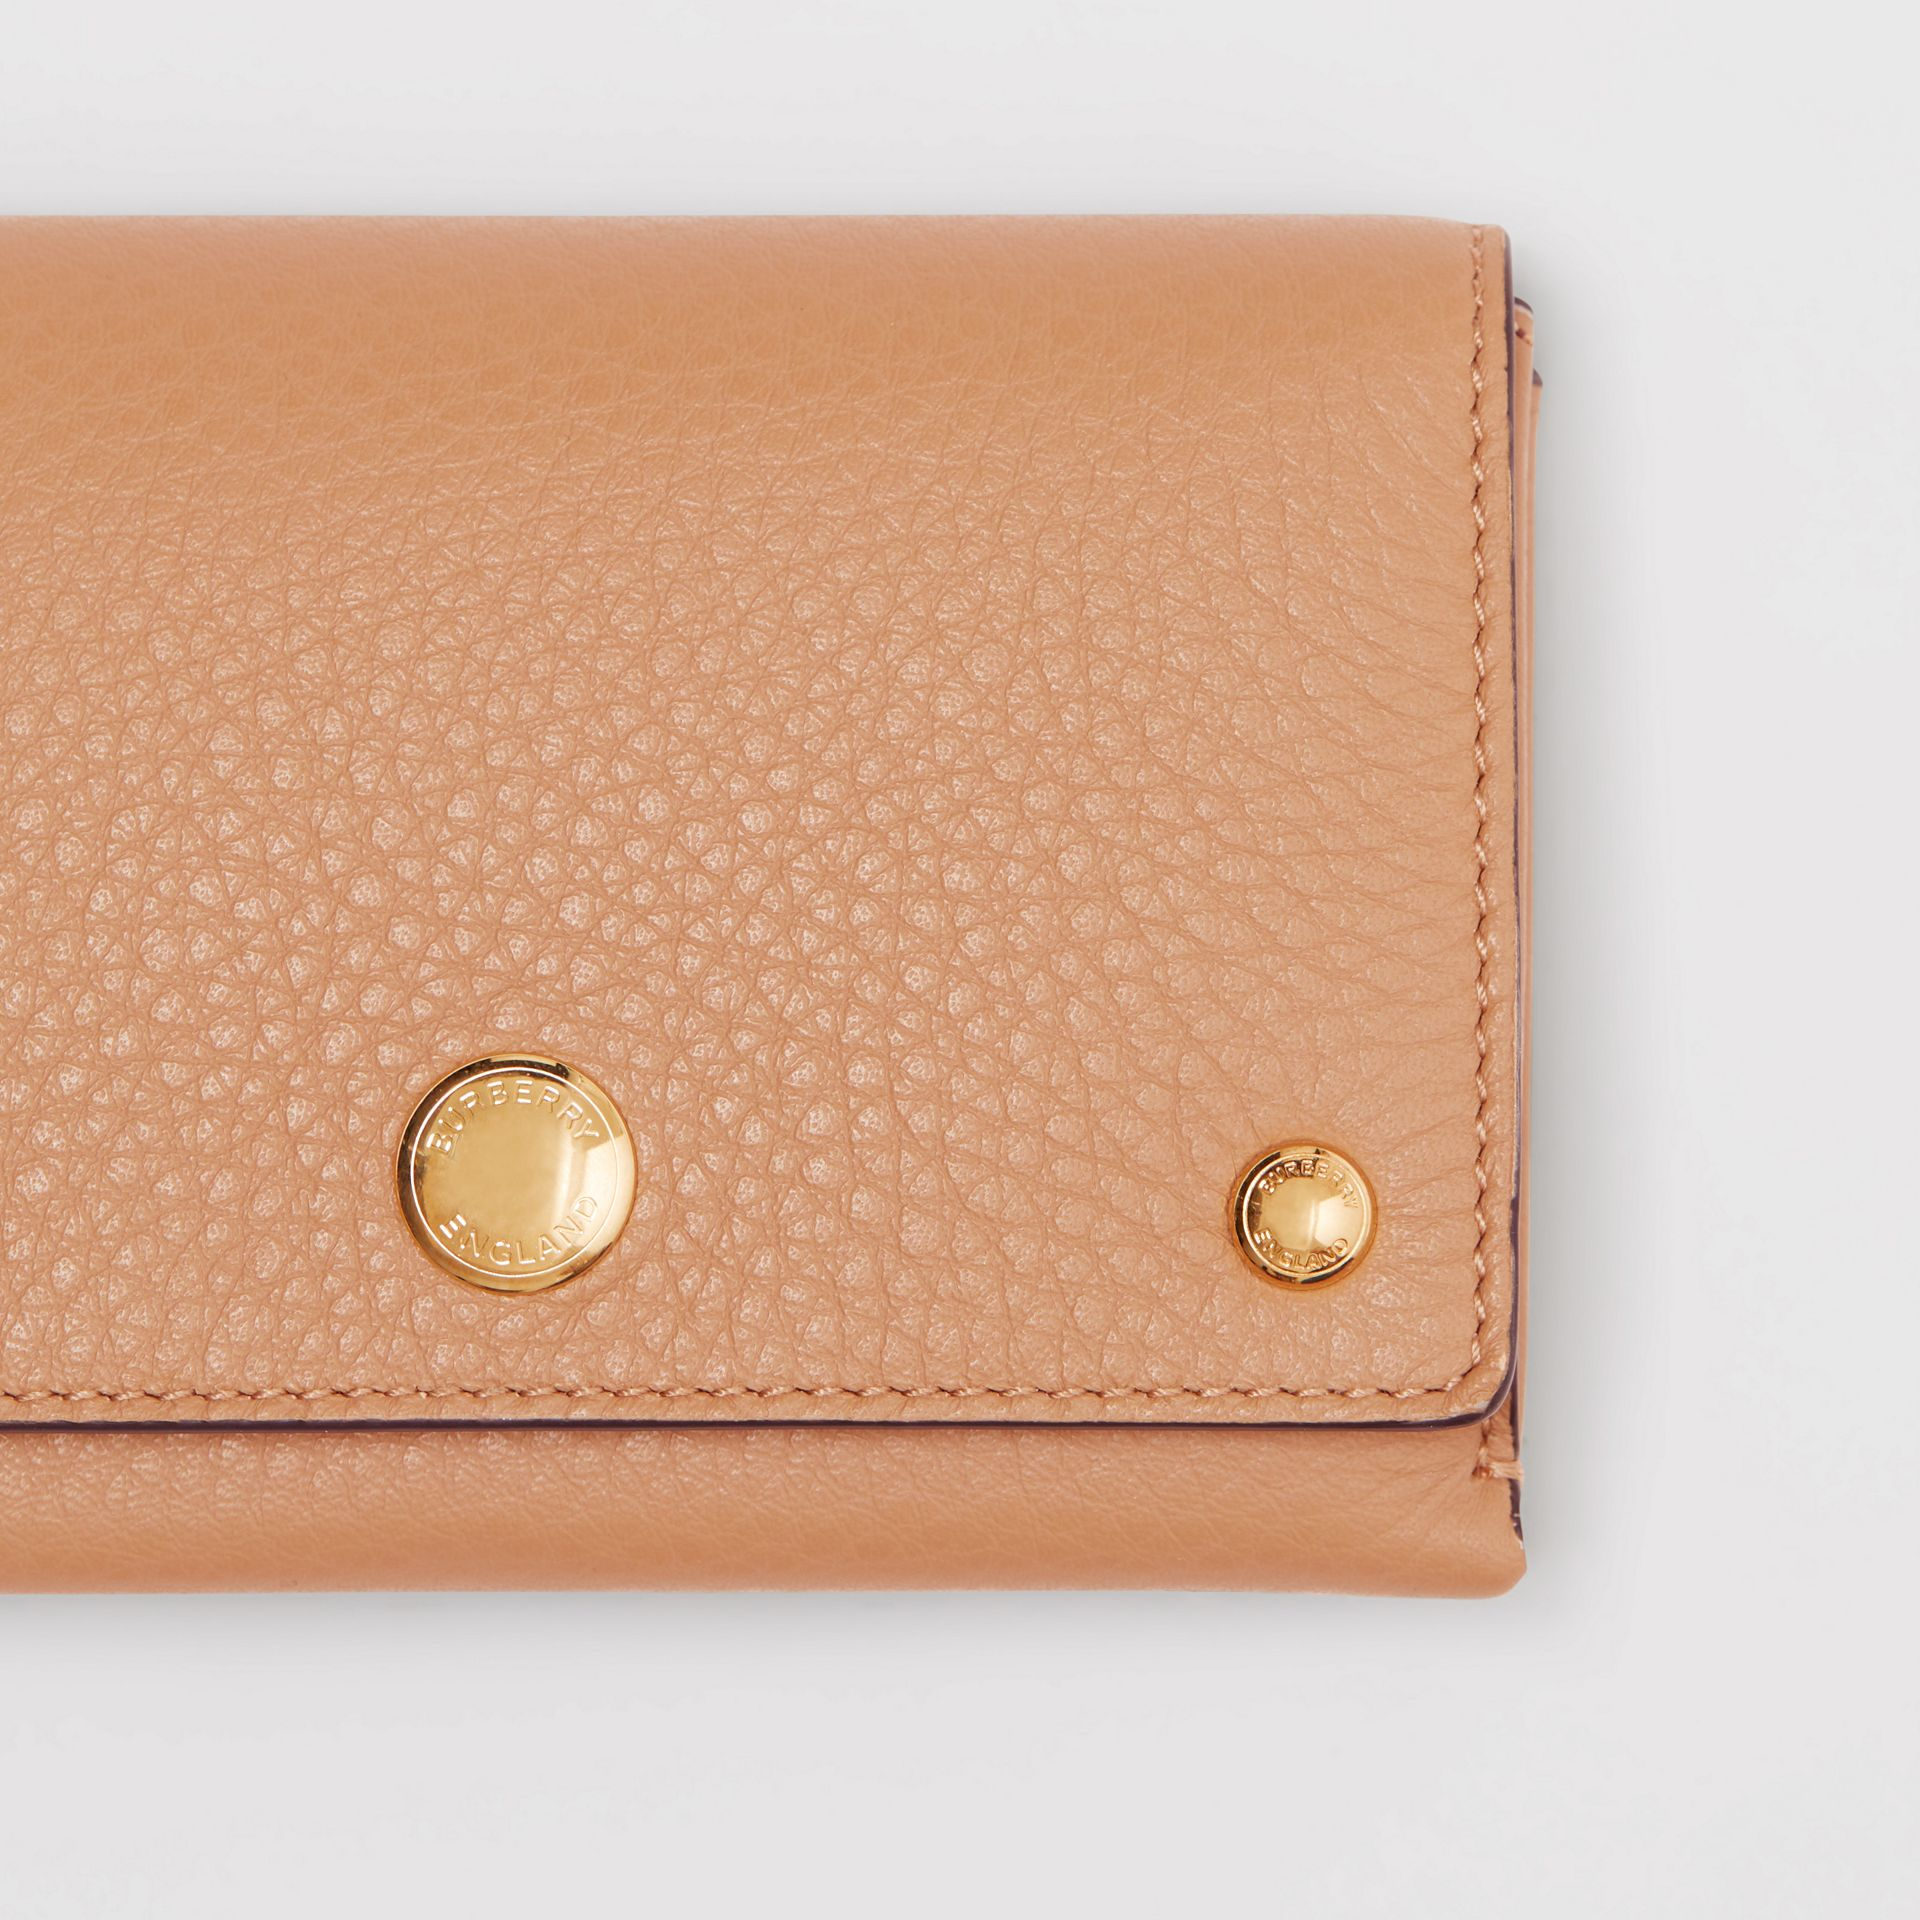 Triple Stud Leather Folding Wallet in Light Camel - Women | Burberry - gallery image 1